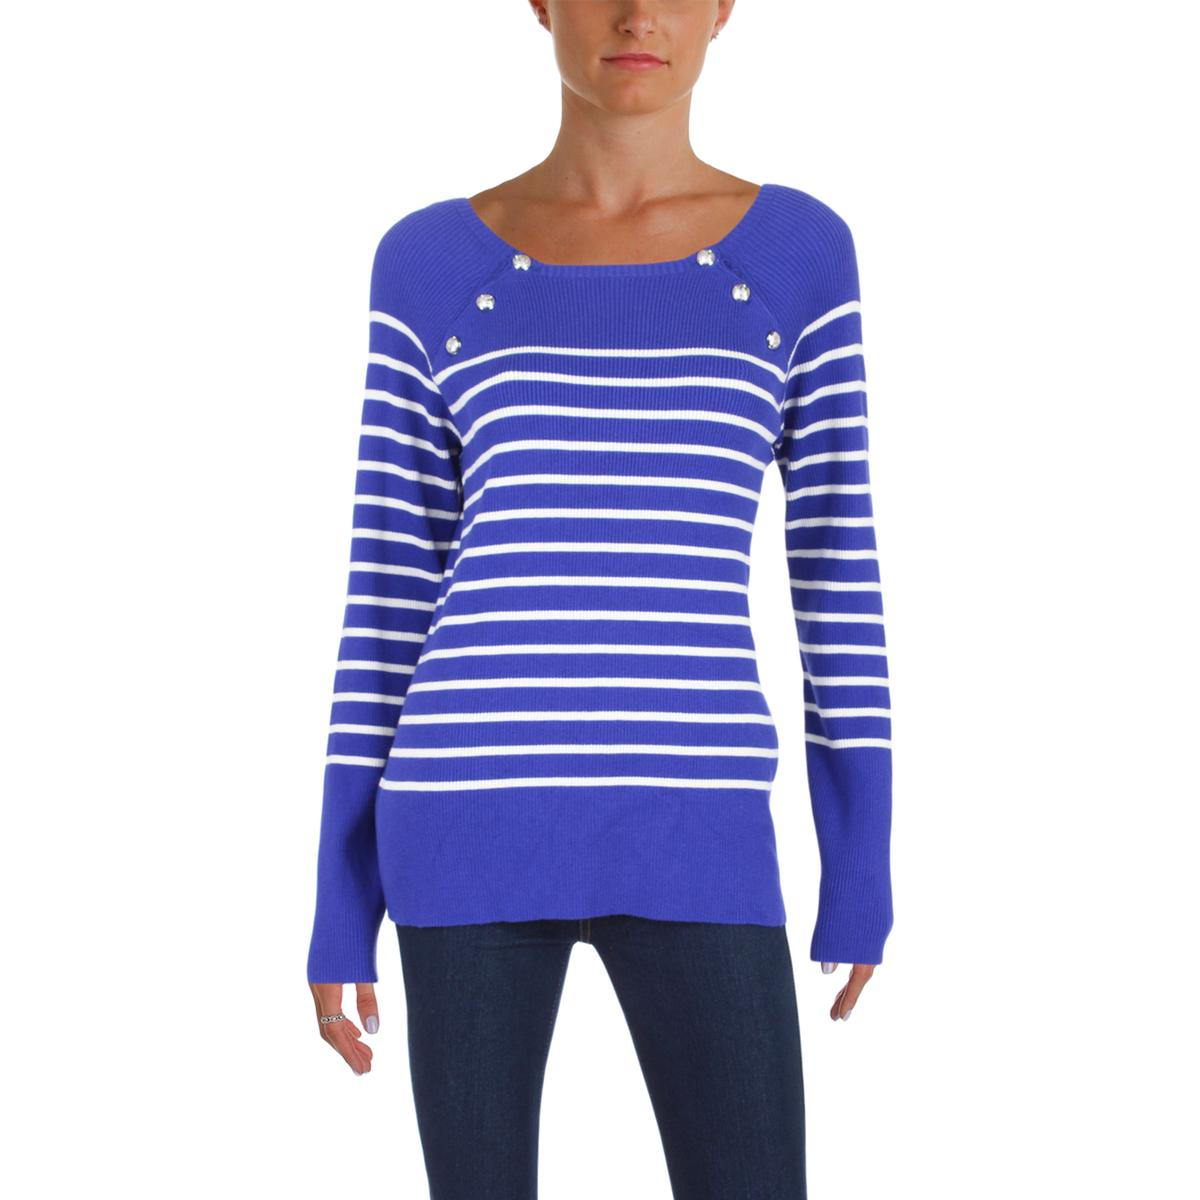 Learned Ralph Lauren Womens Sweater Size Medium Buy One Give One Sweaters